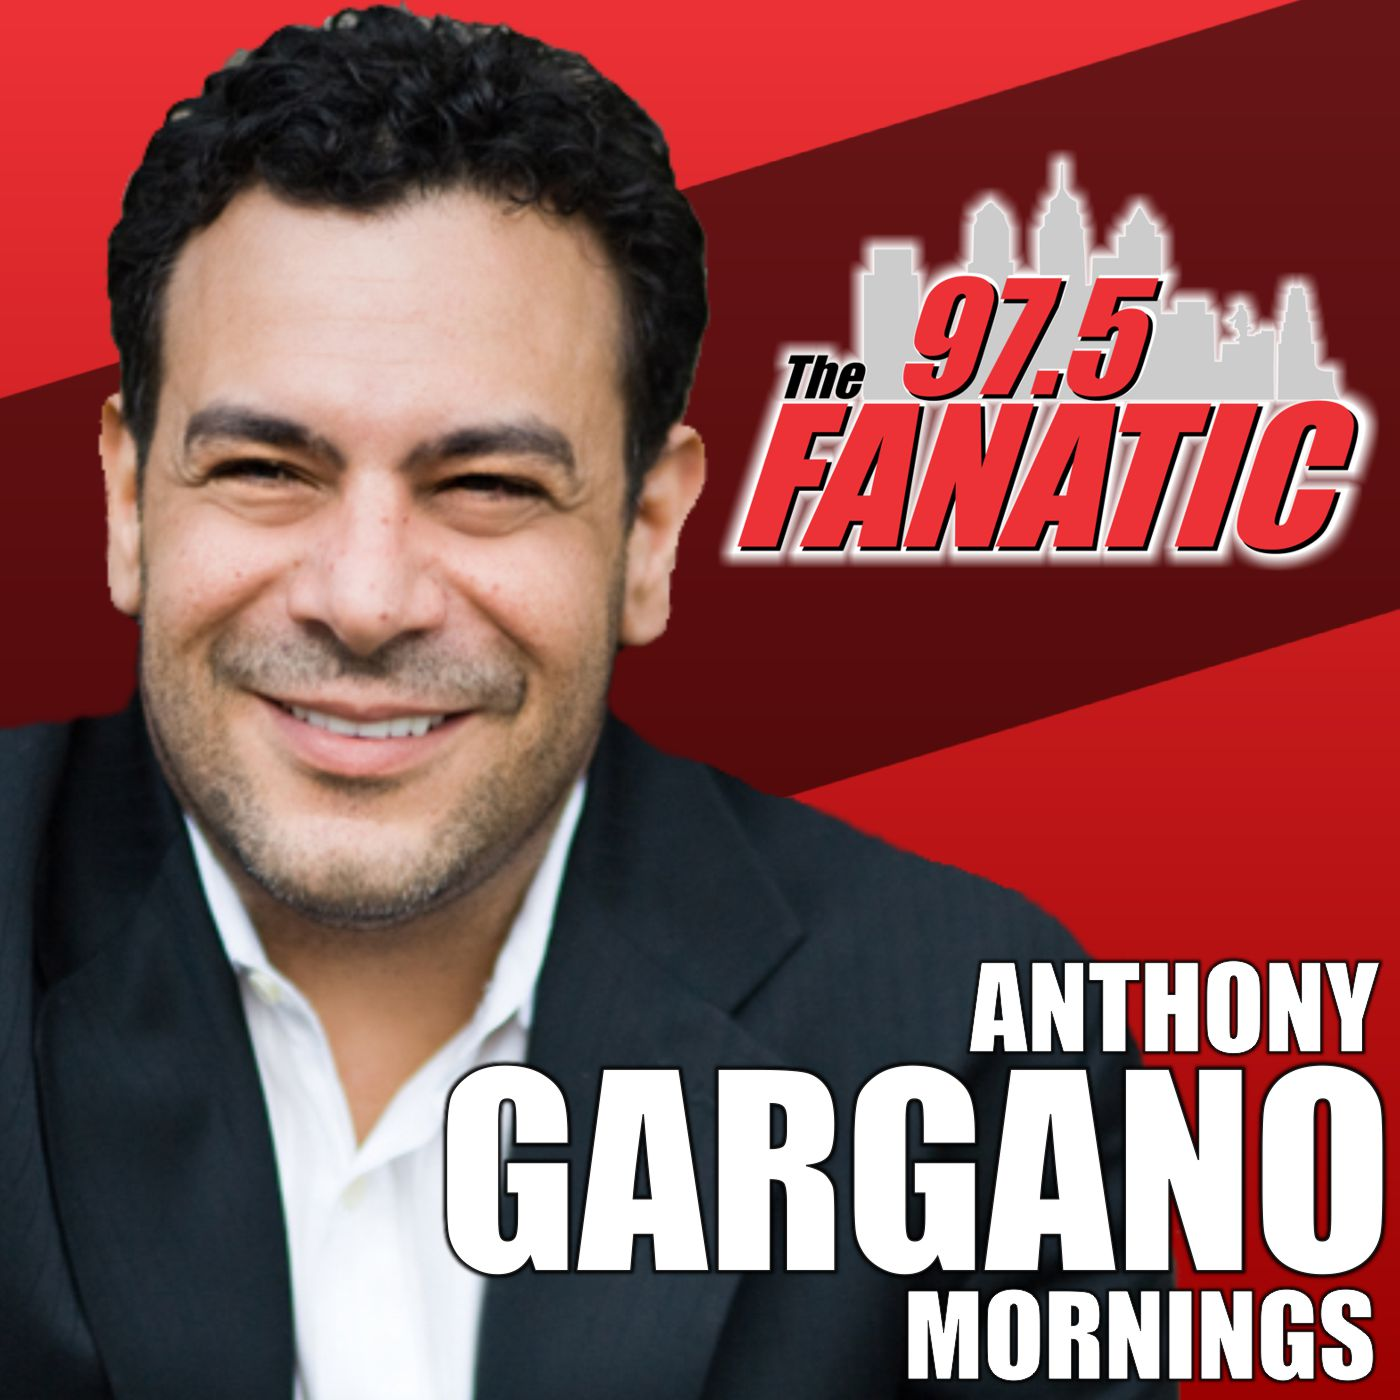 Mornings with Anthony Gargano - 97.5 The Fanatic